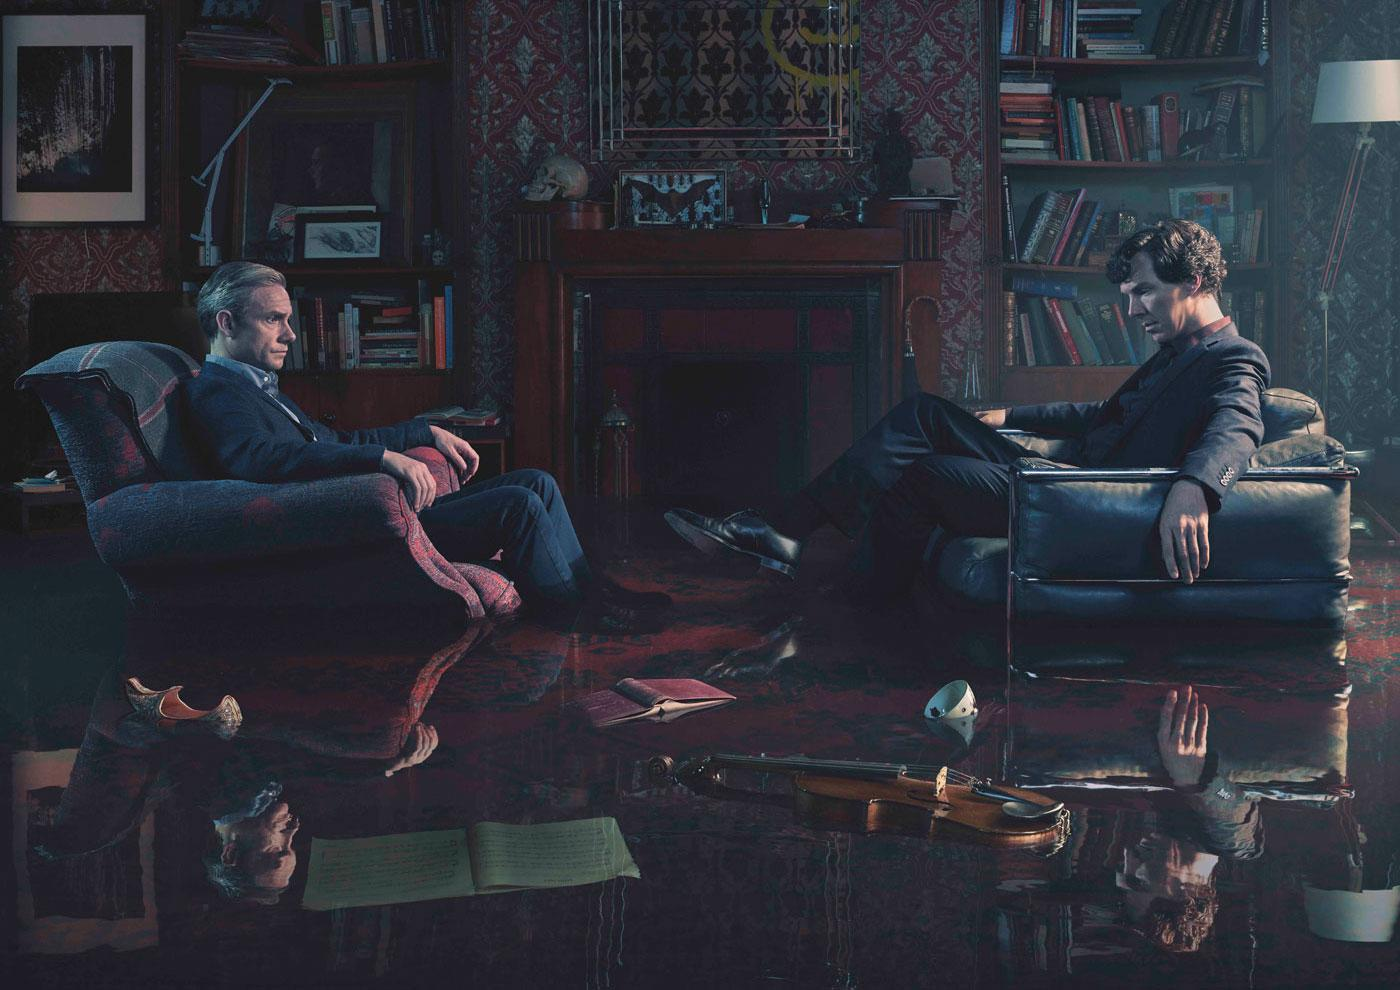 The finale of Sherlock approaches; it's not a game anymore. (Todd Antony/Hartswood Films & MASTERPIECE)